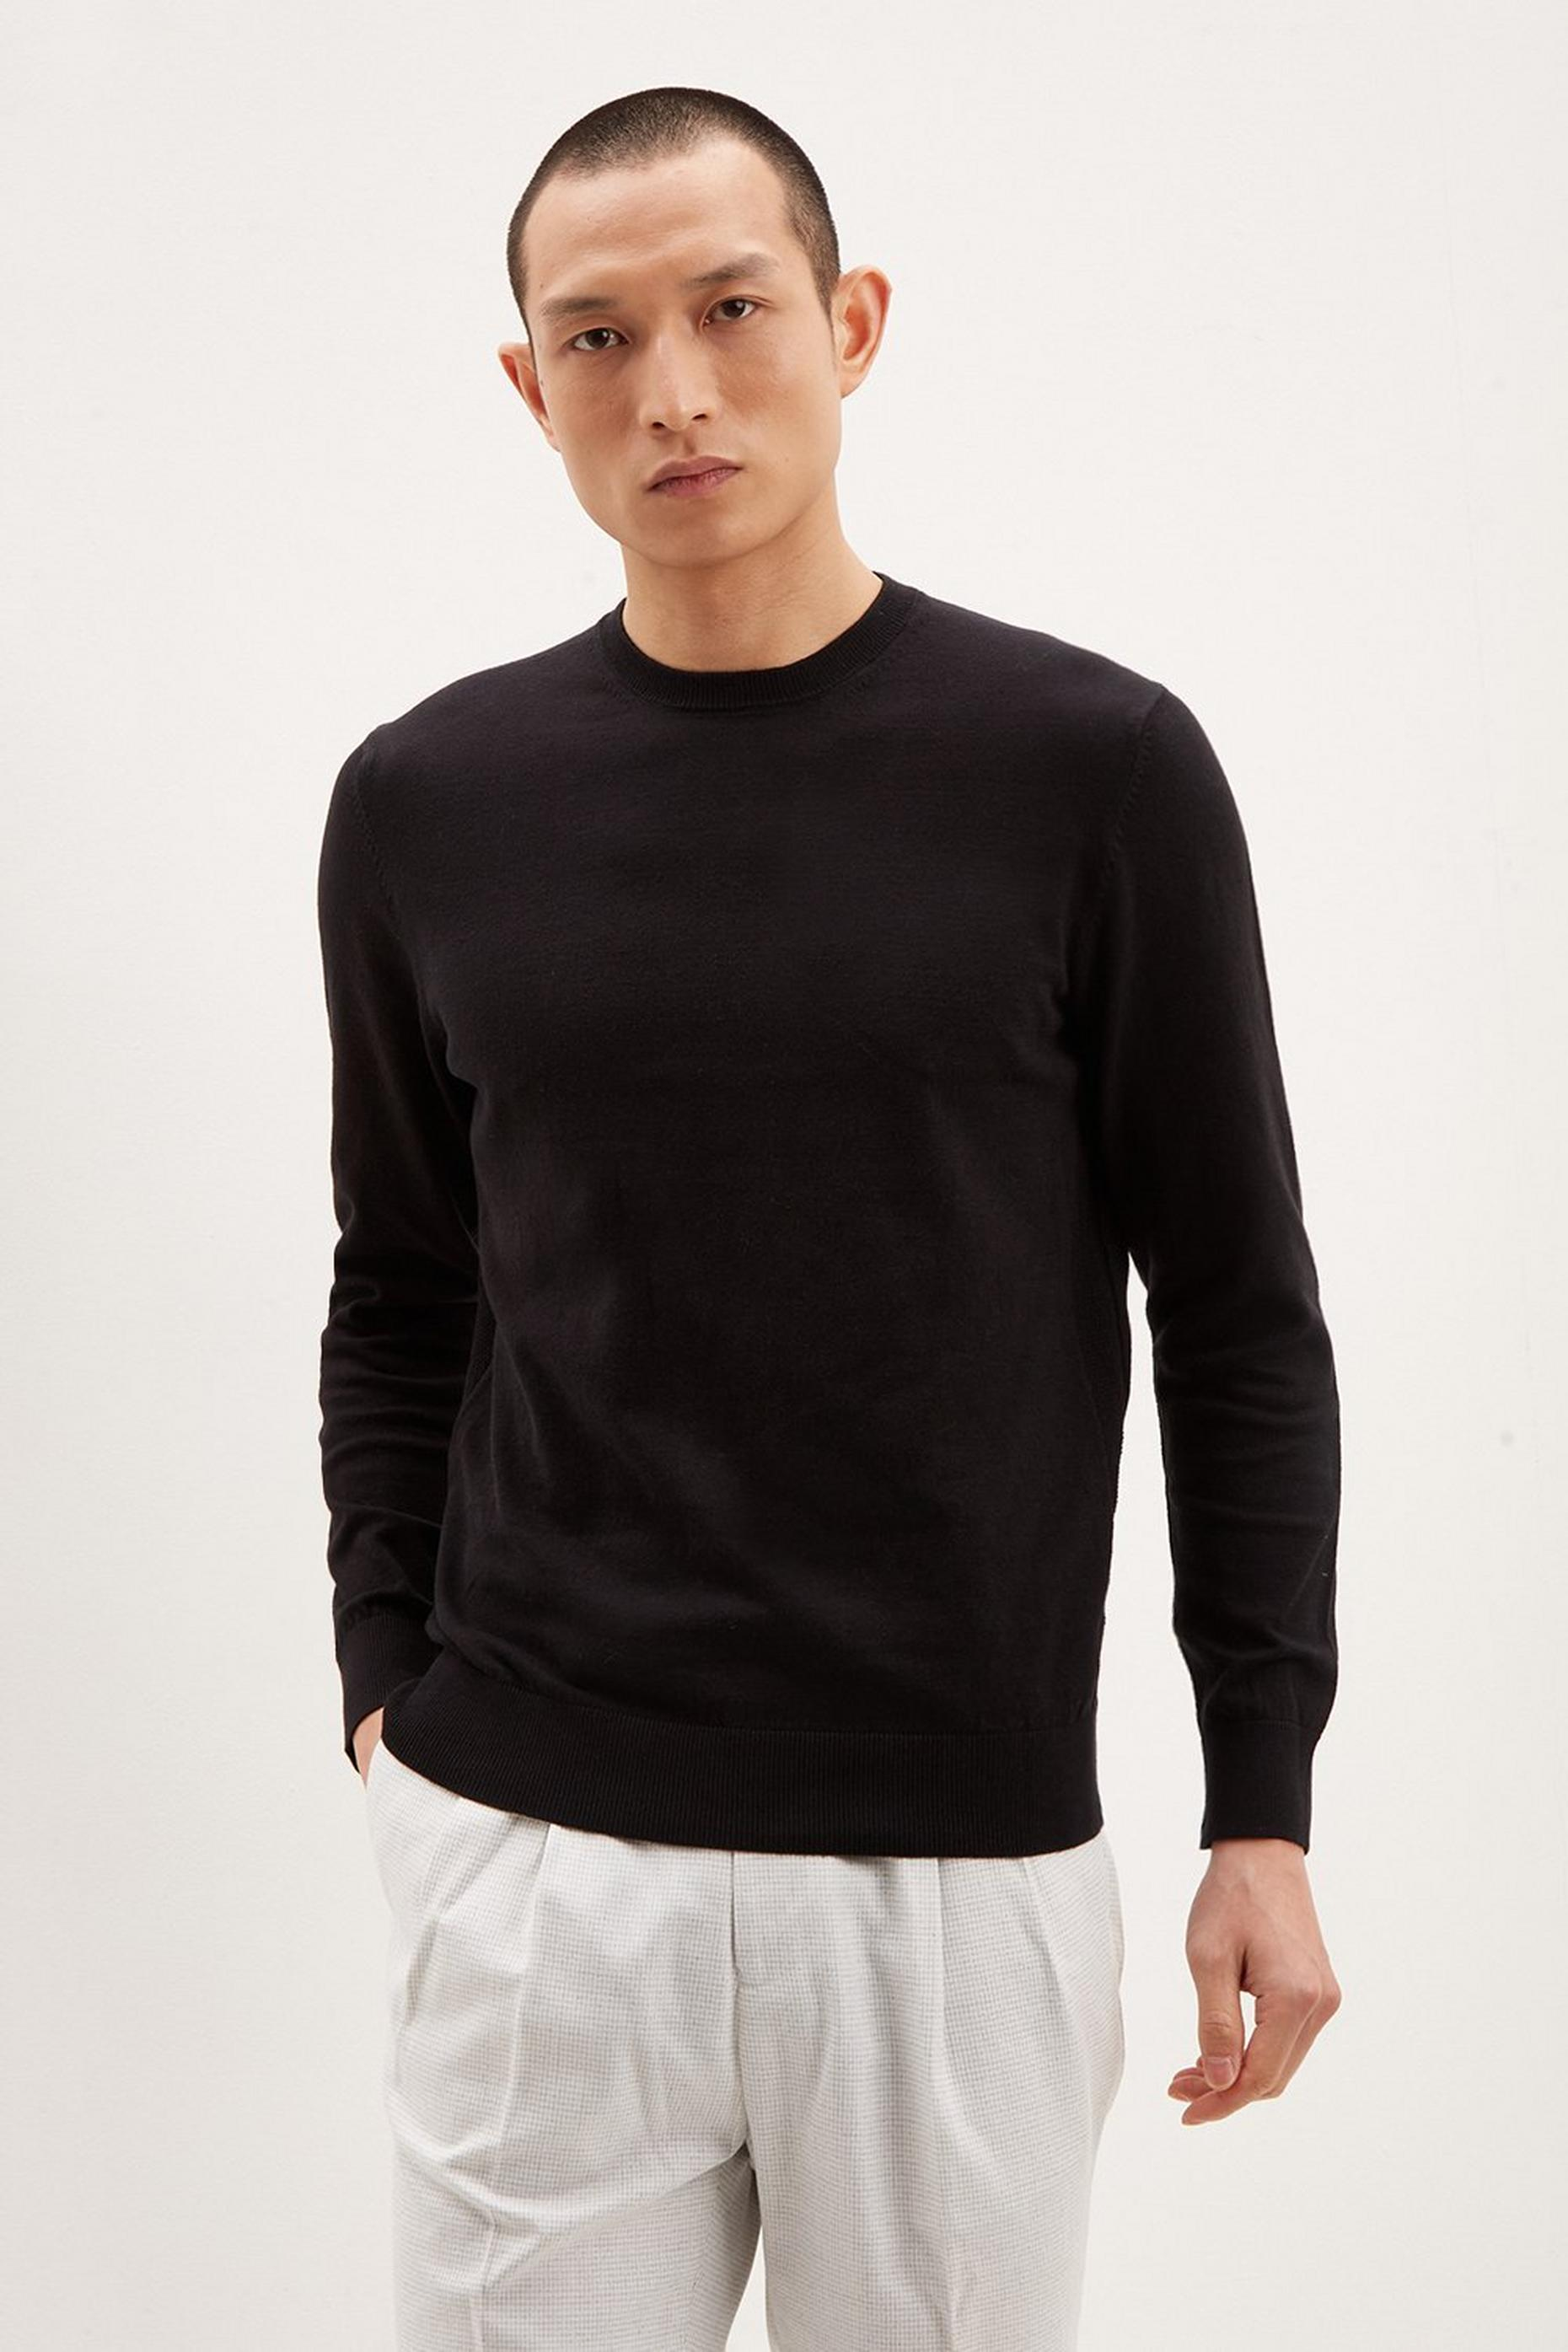 Black Crew Neck Jumper with Organic Cotton